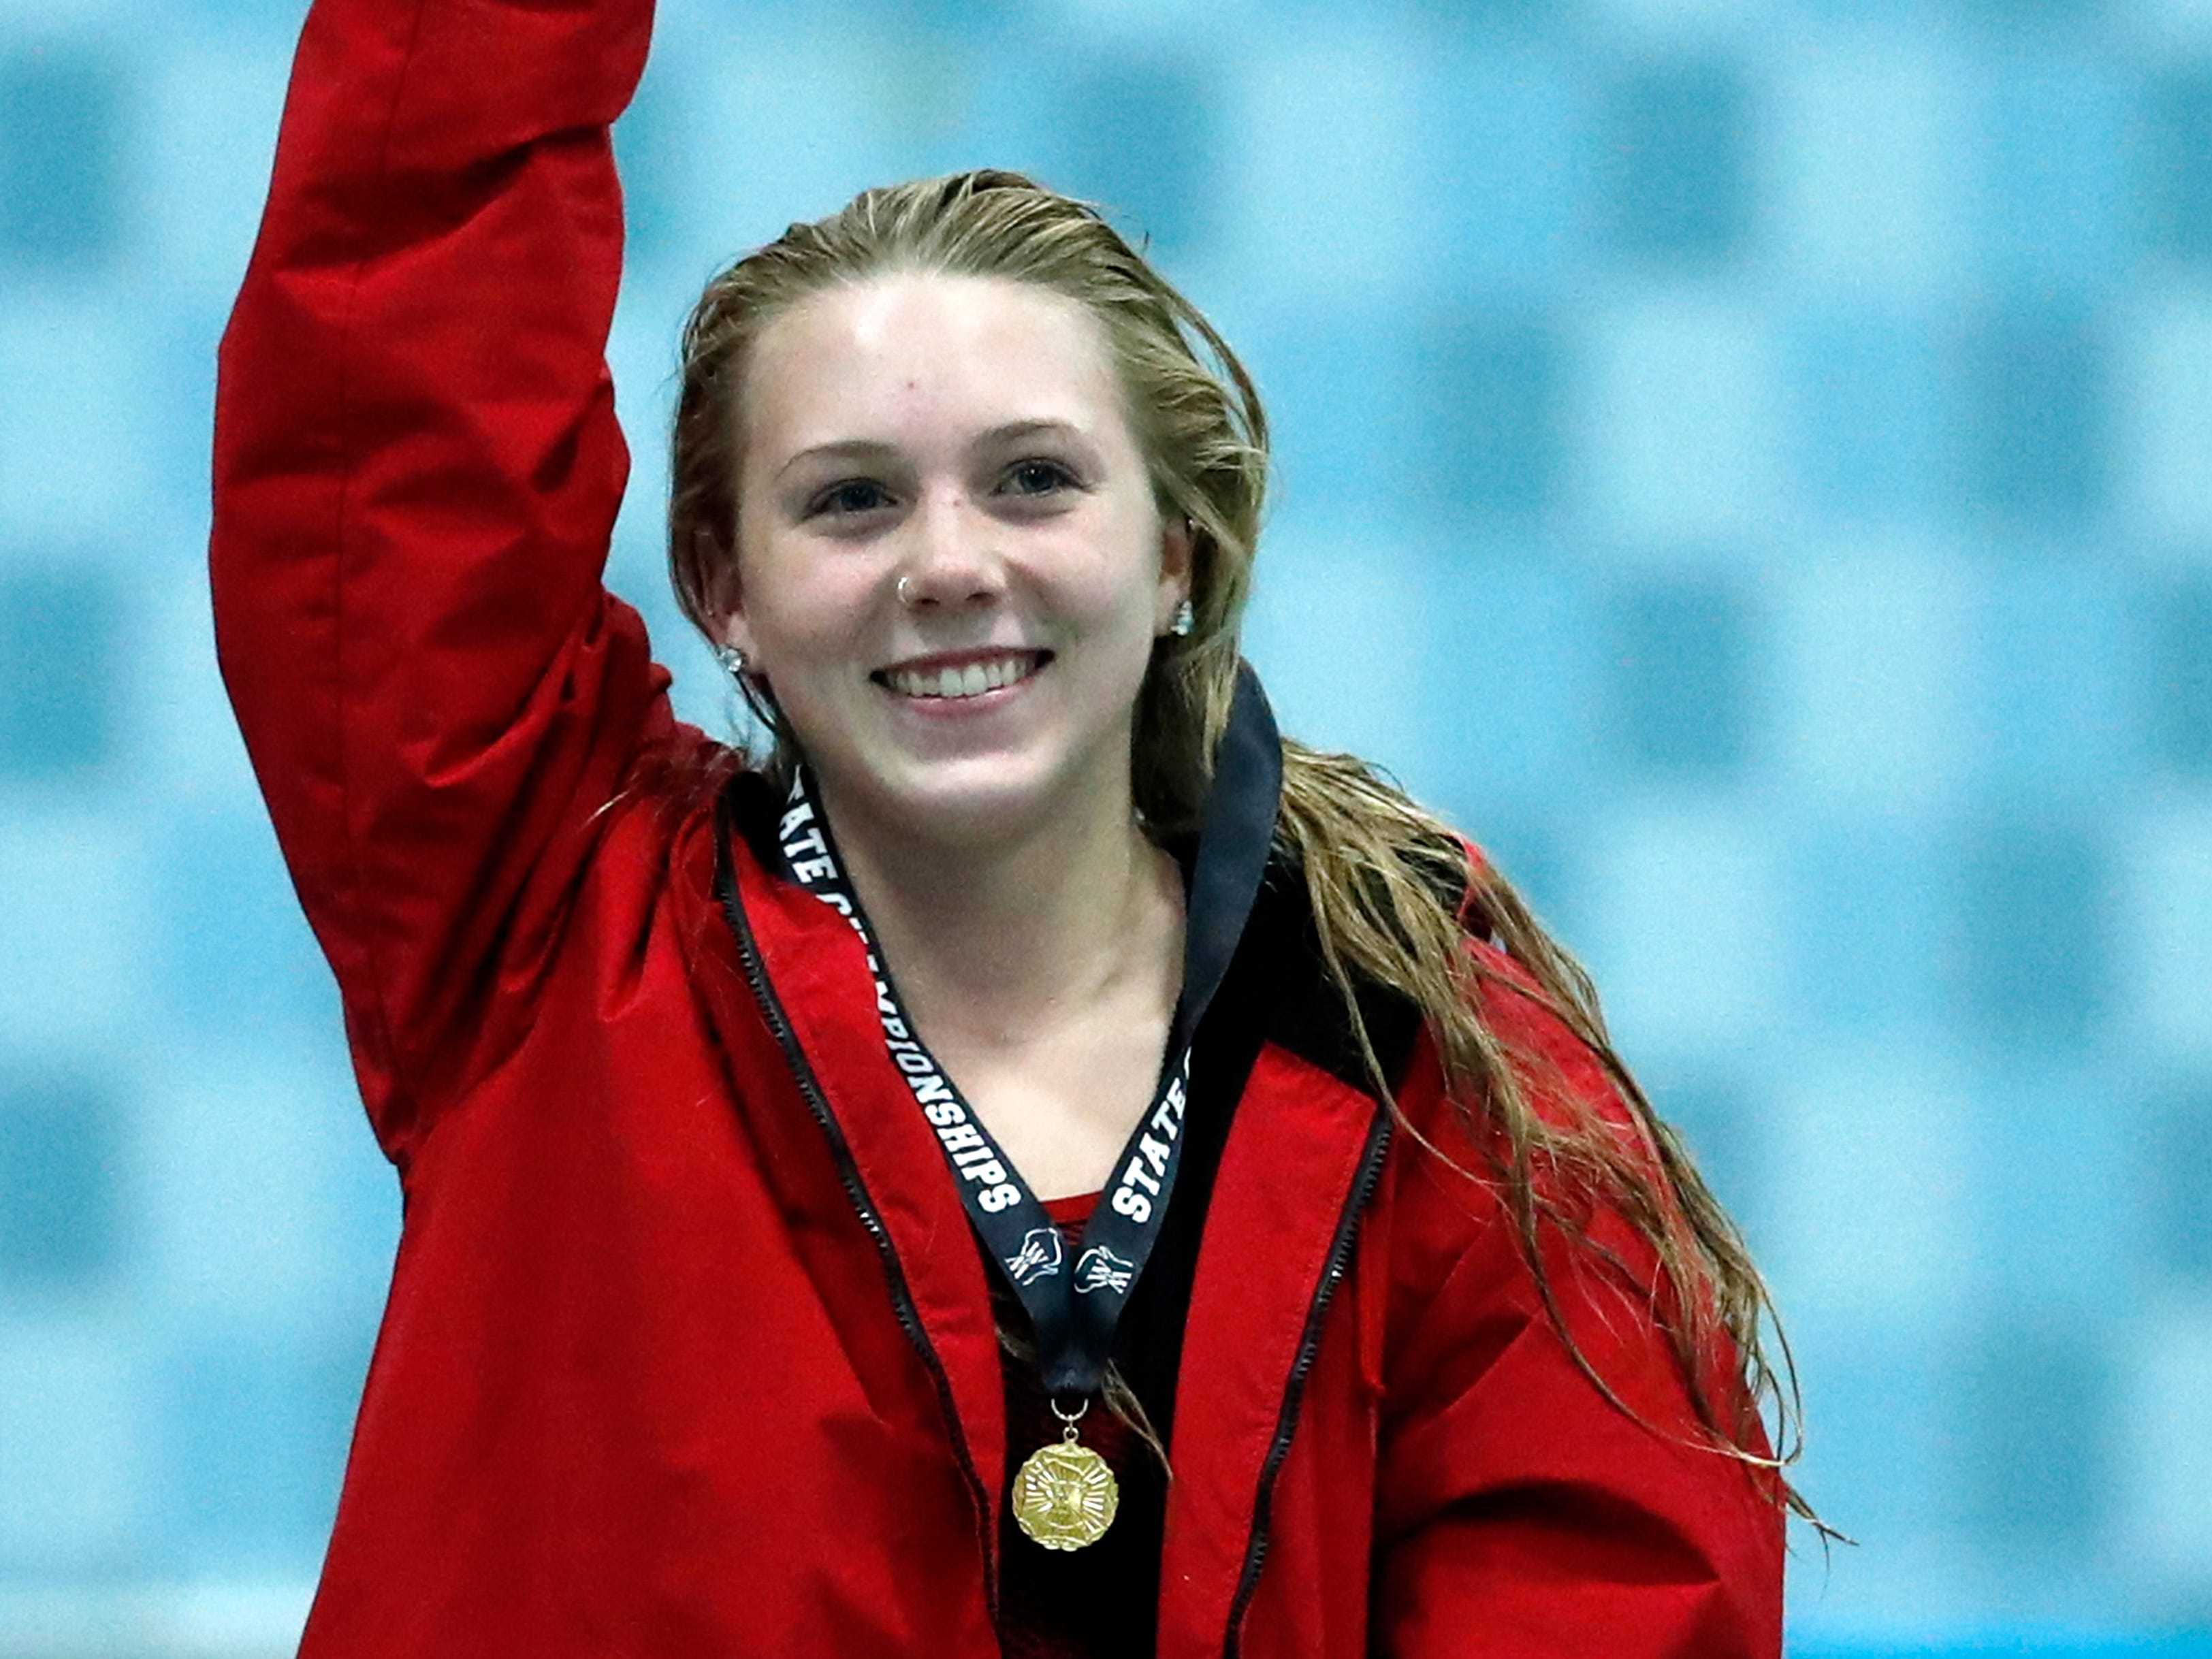 Neenah's Av Osero waves to the crowd after getting first place in the diving competition during the WIAA Division 1 State Swimming and Diving meet Saturday, Nov. 10, 2018, at the UW Natatorium in Madison, Wis.